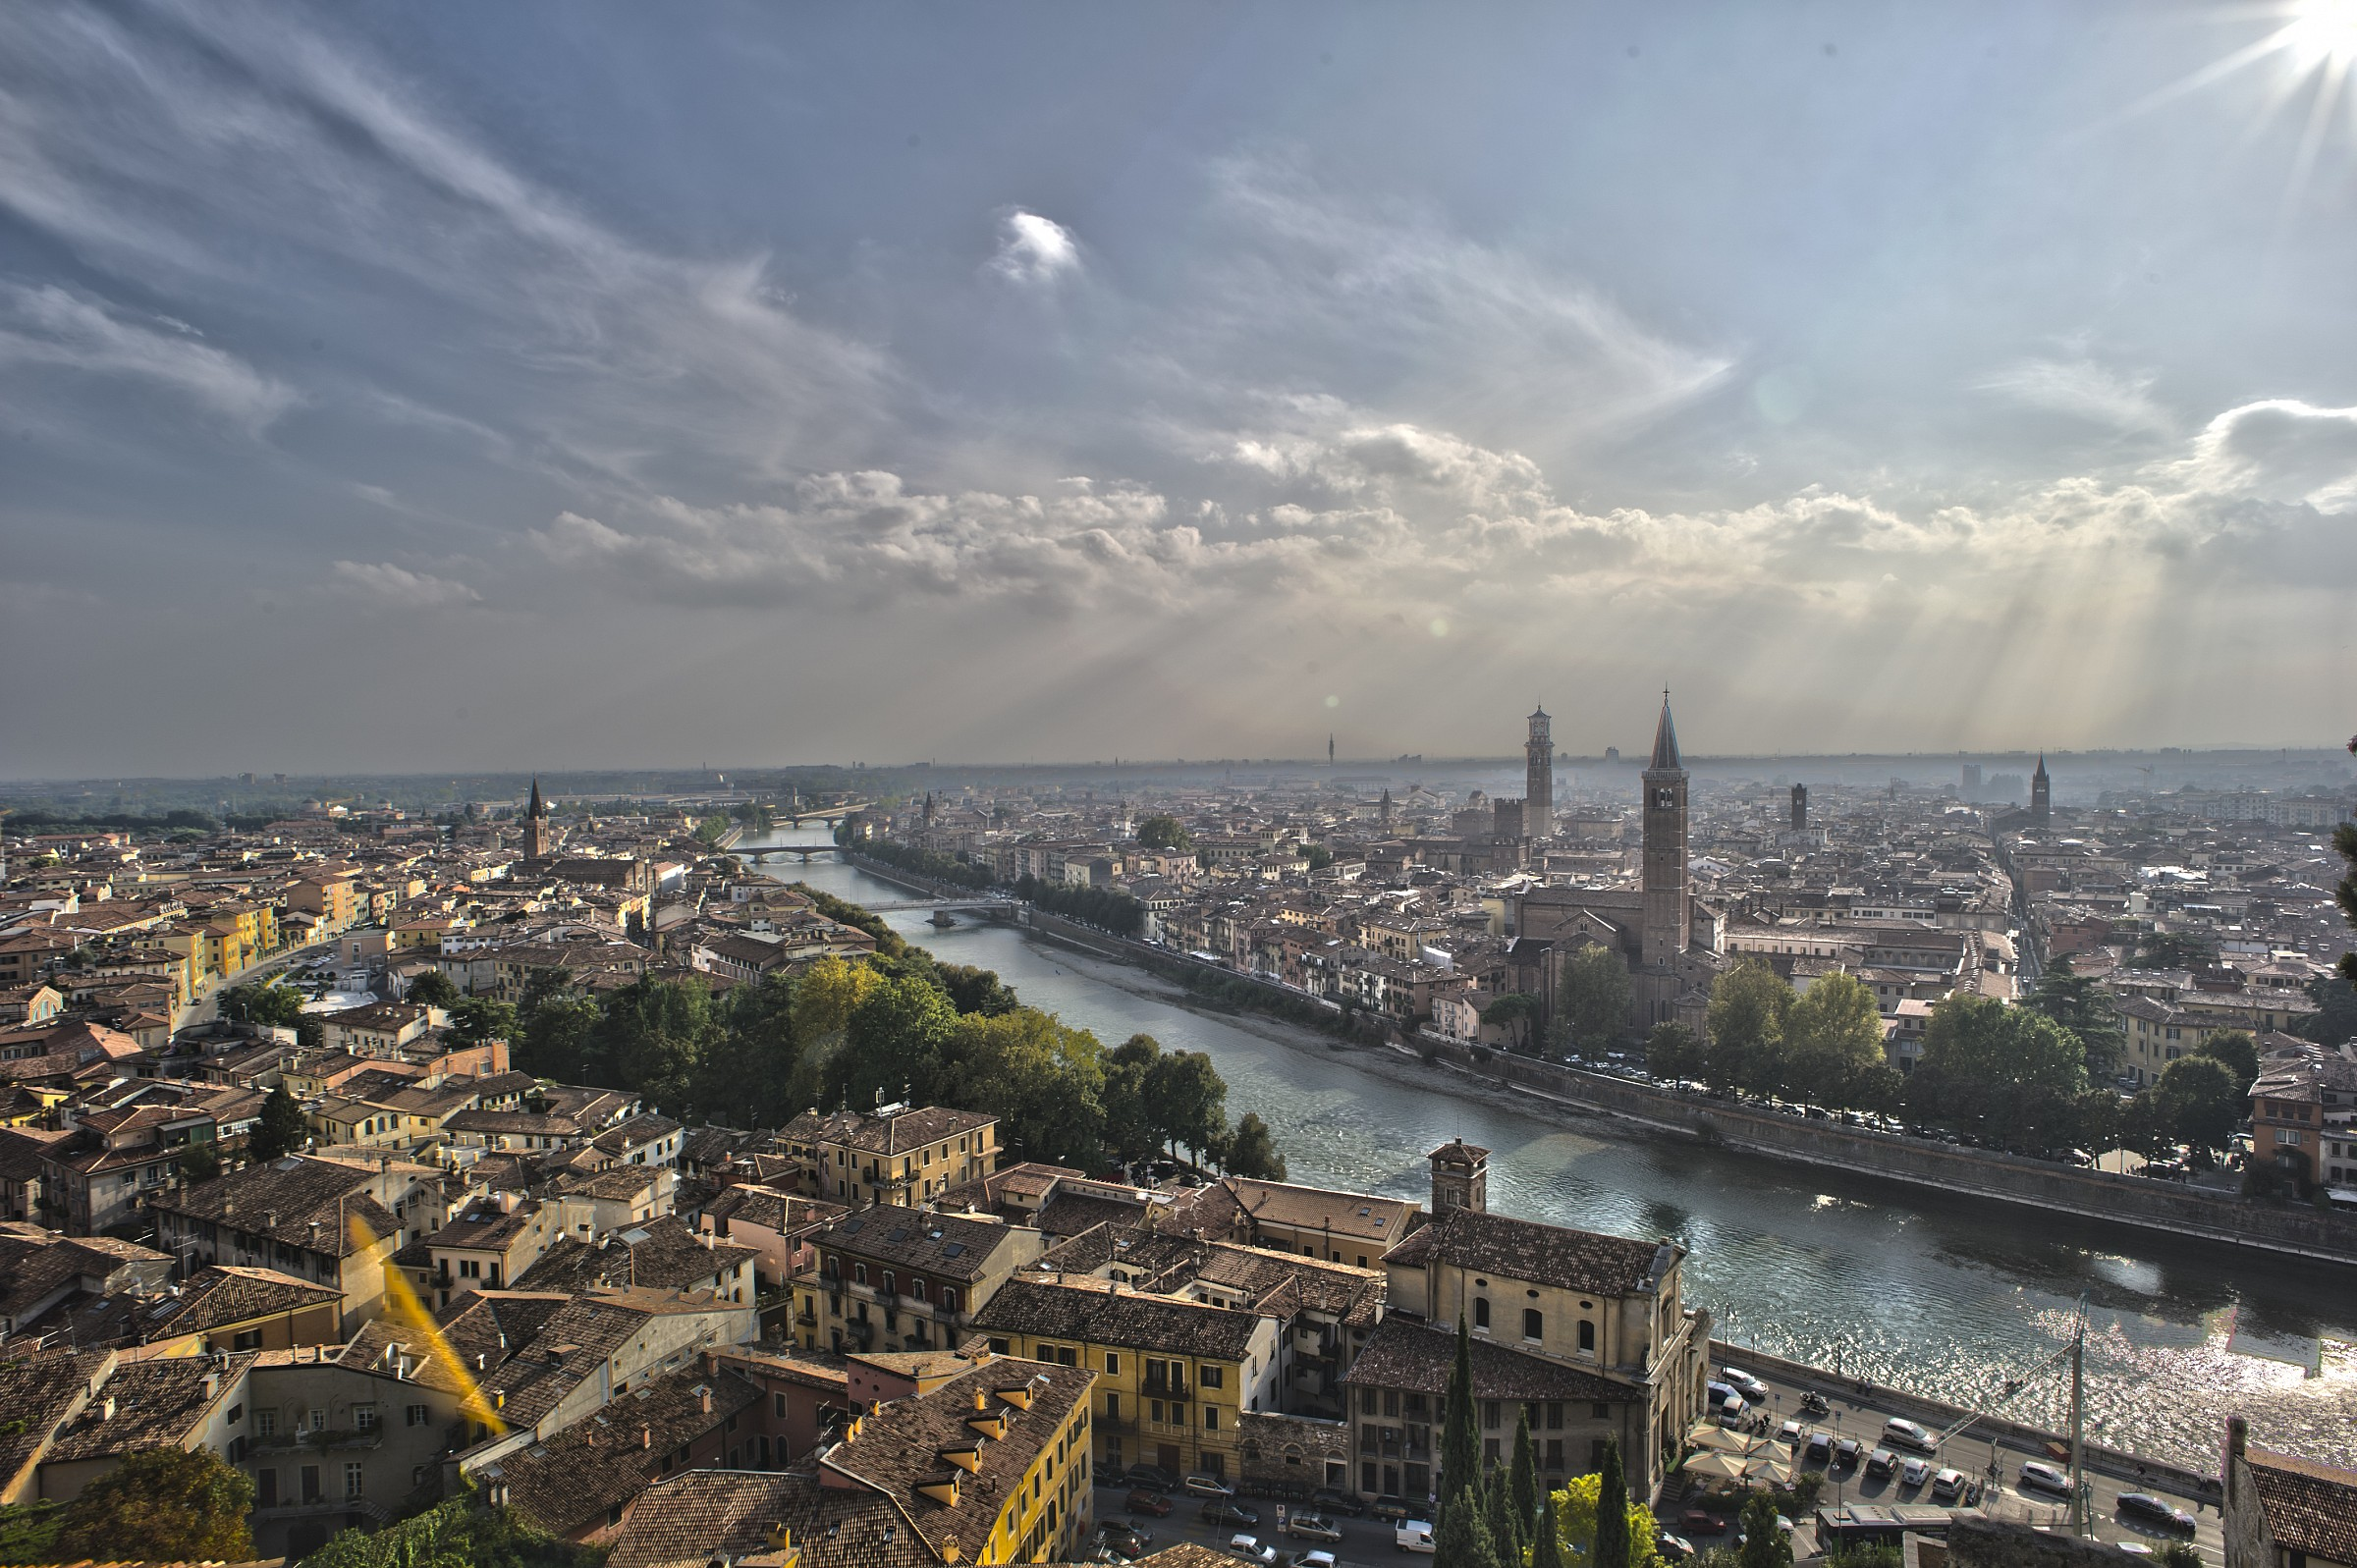 View from Castel San Pietro (vr)...